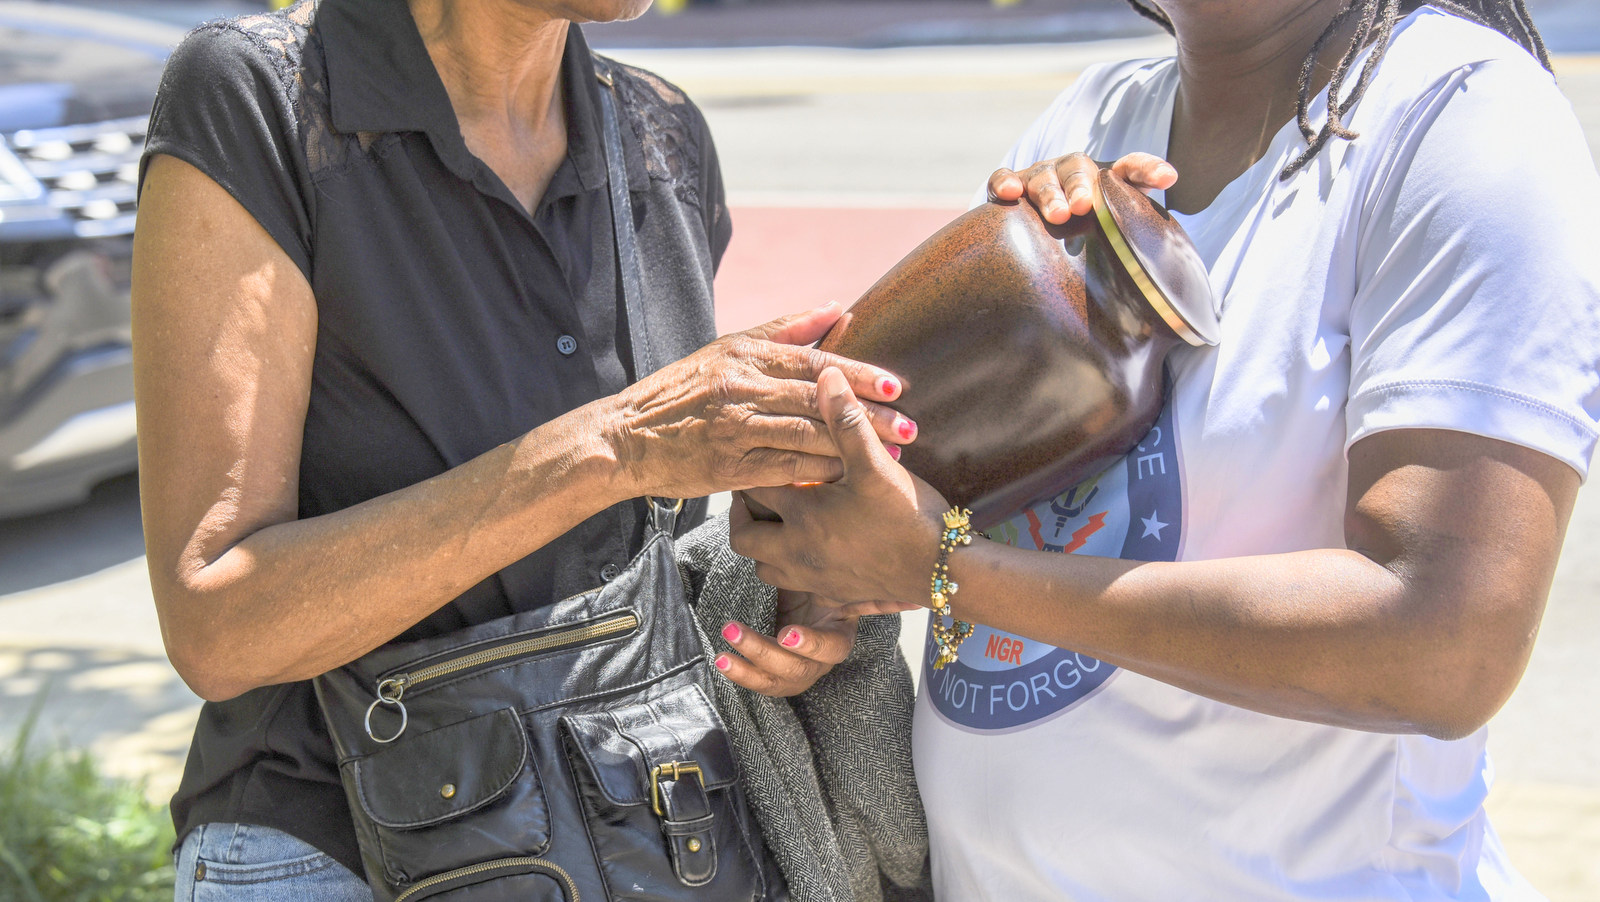 Lawrence Alexander's mother, Teresa Singleton, and sister, Faith Alexander, hold his ashes outside at the place where he was found dead, near a bus bench outside Baltimore City Hall. (J.M. Giordano)